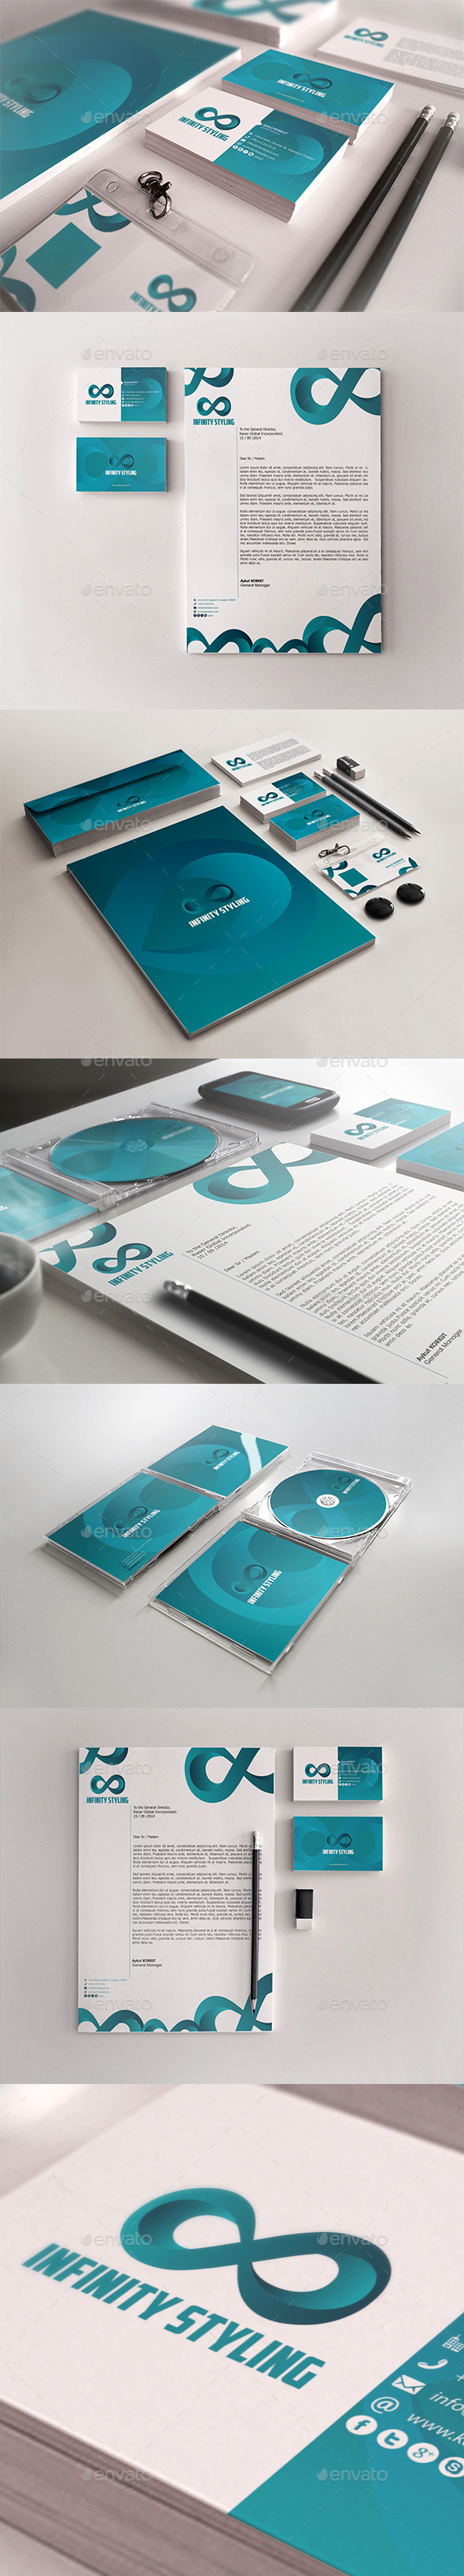 Infinity Styling Corporate Identity Package - Stationery Print Templates